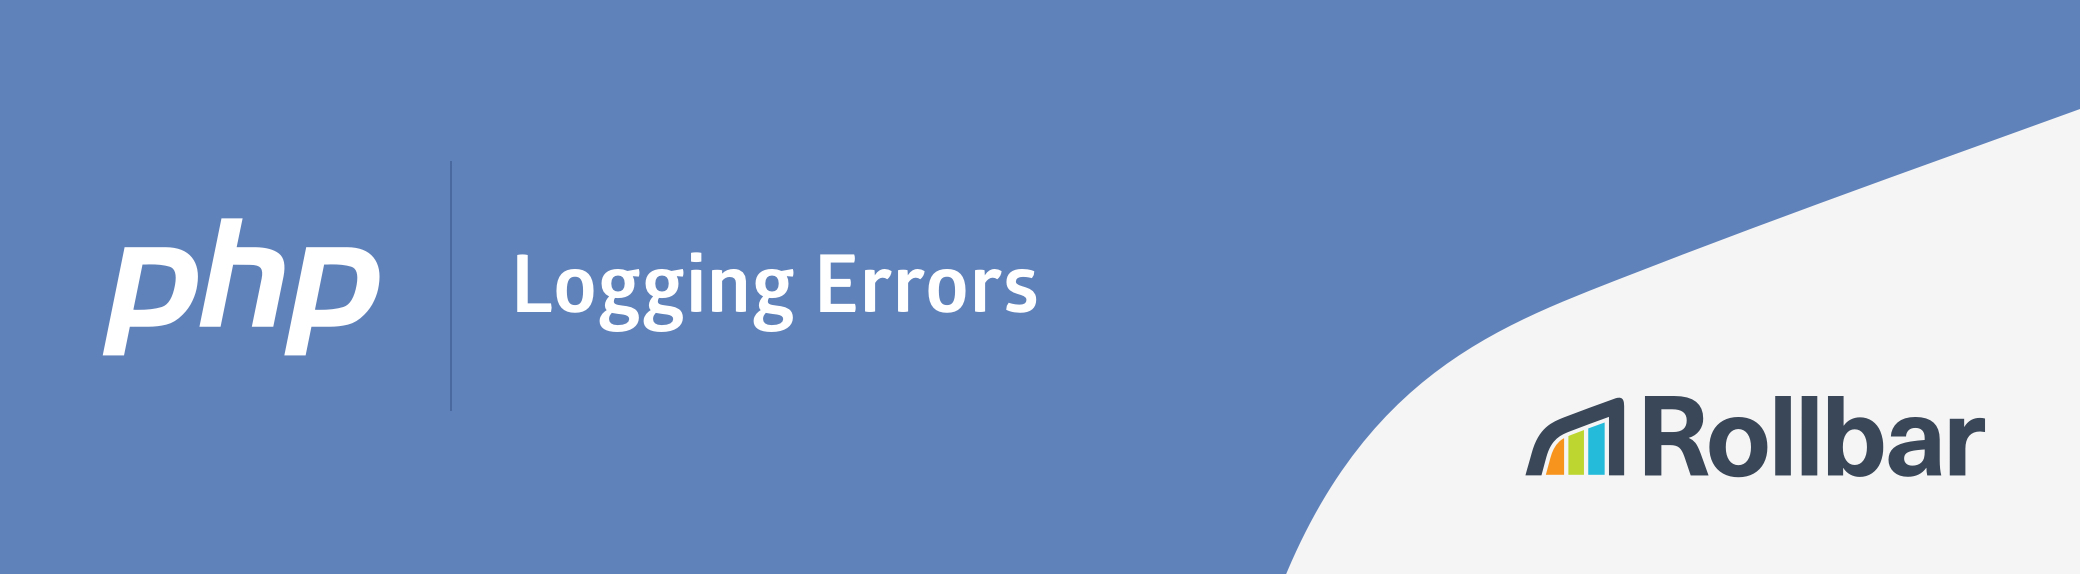 Where are PHP errors logged | Rollbar